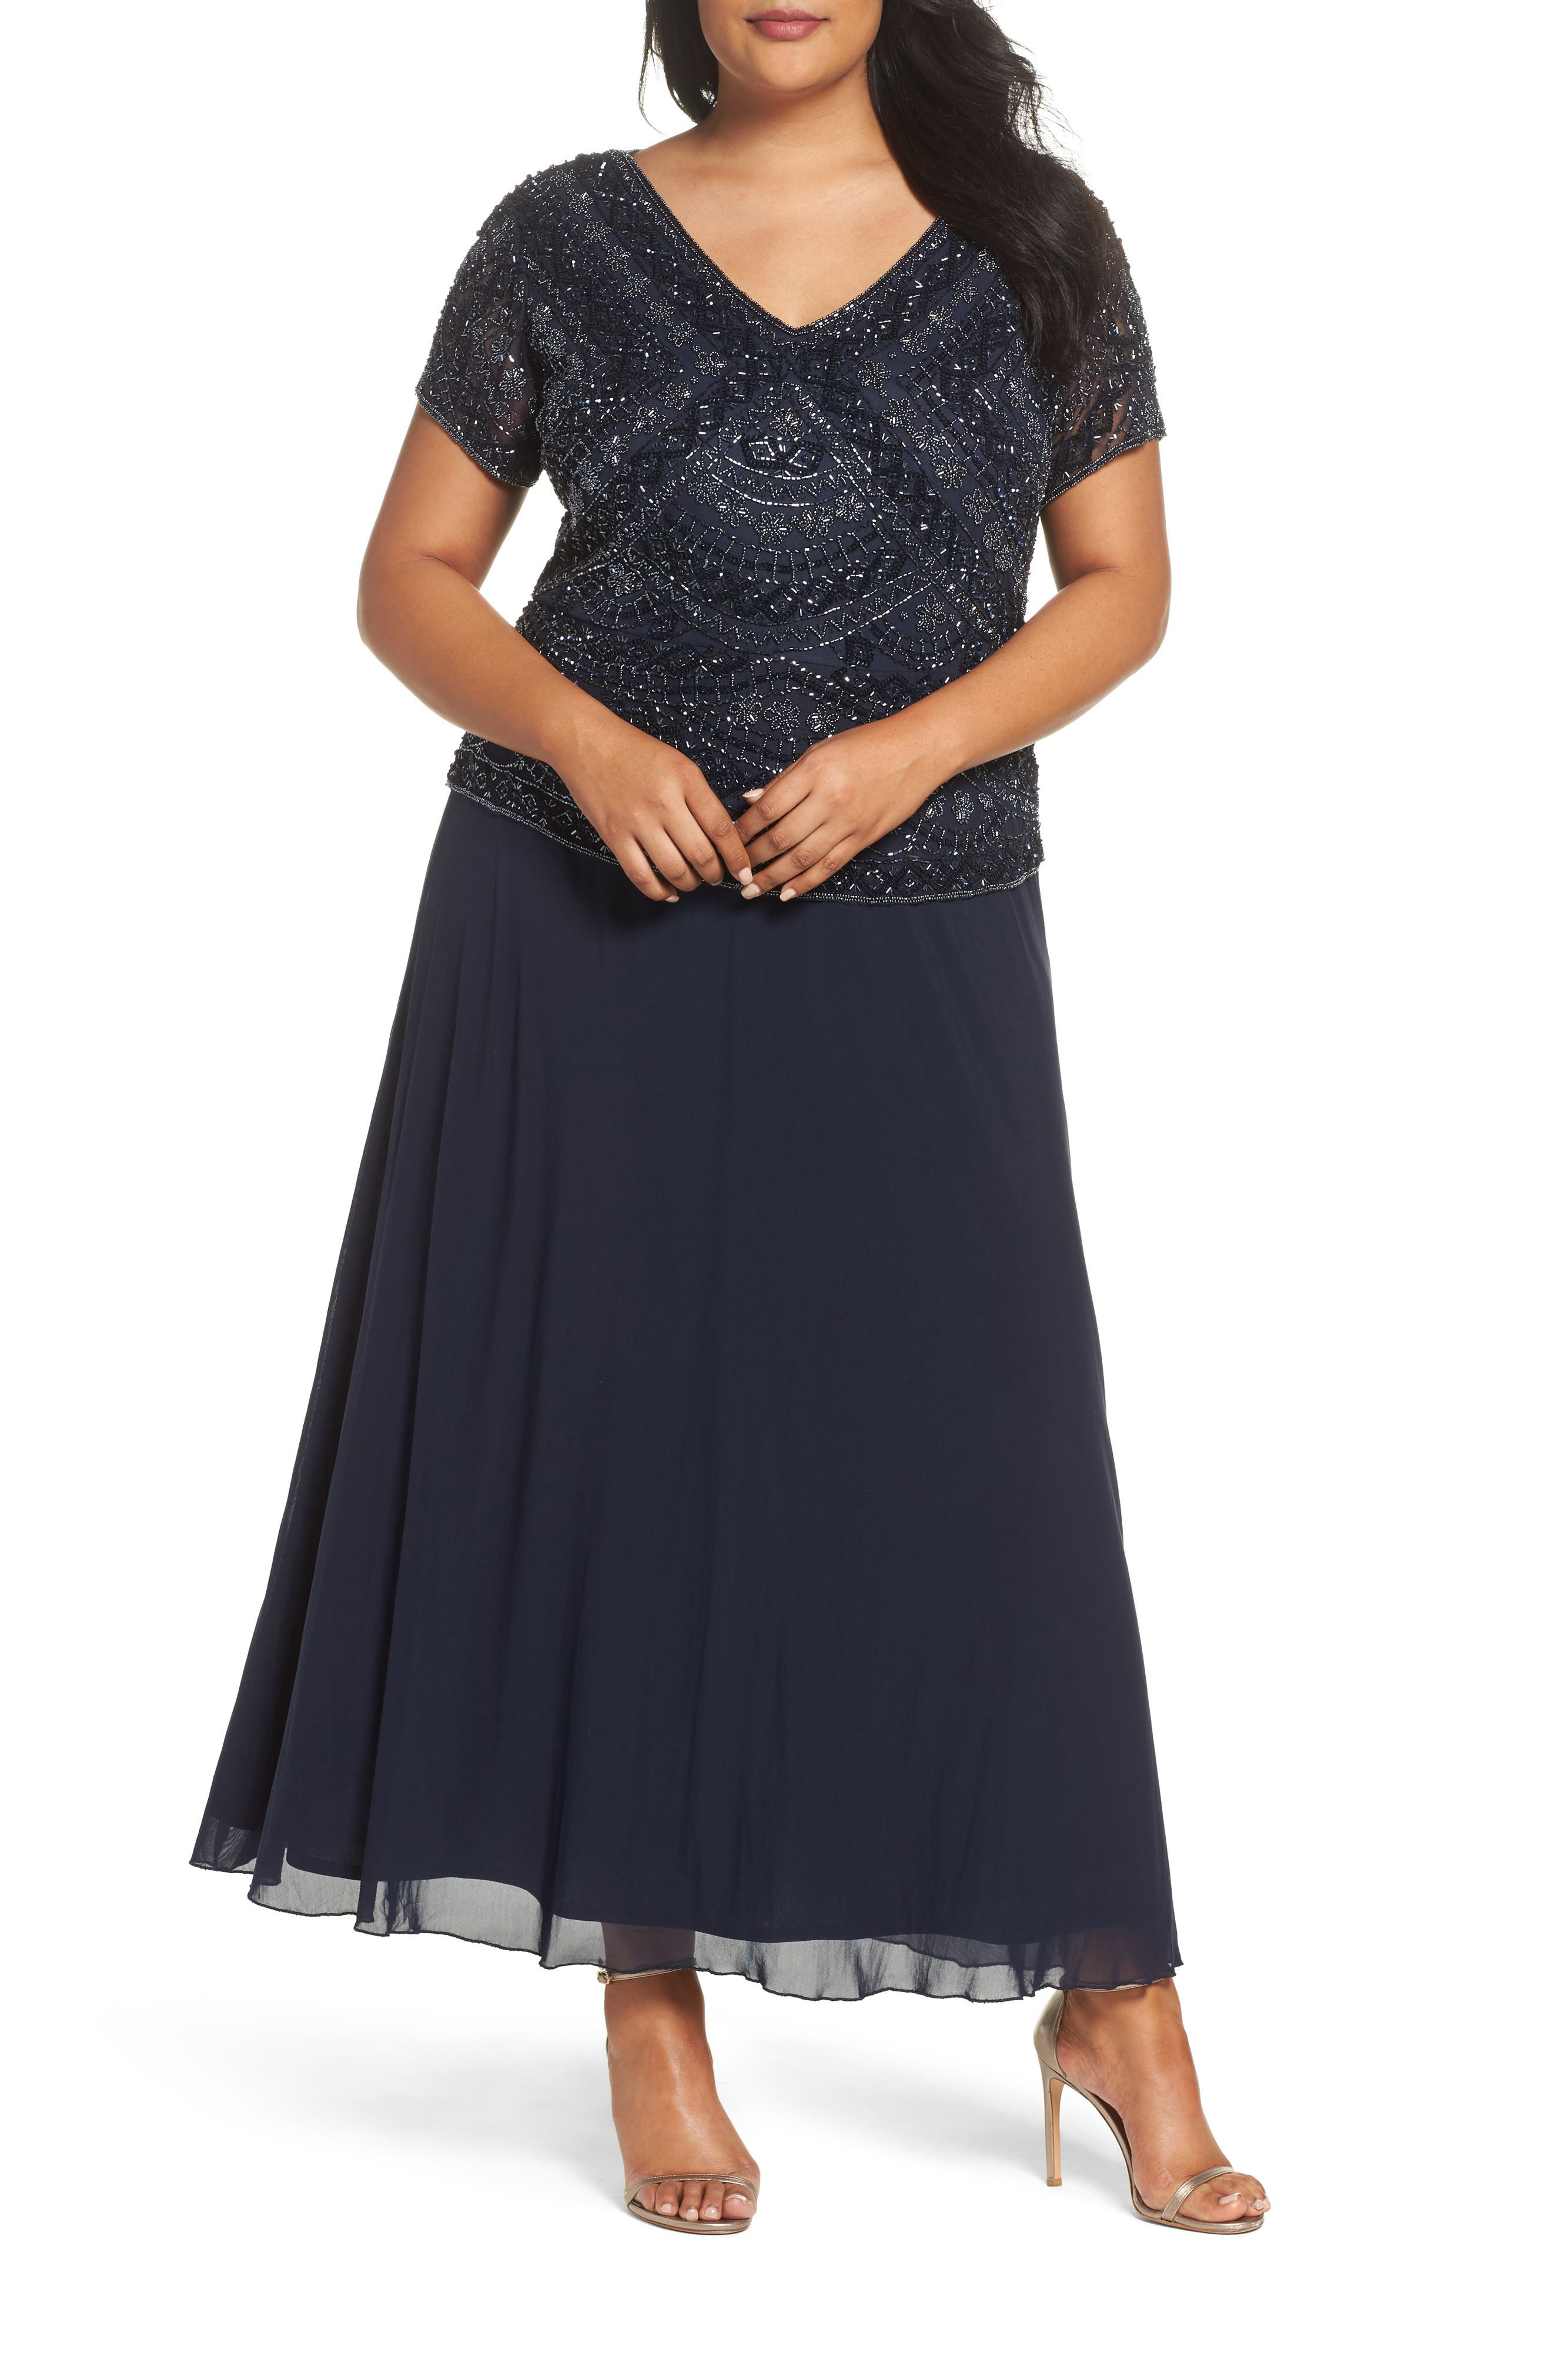 1940s Plus Size Dresses | Swing Dress, Tea Dress Plus Size Womens Pisarro Nights Beaded Mock Two-Piece Gown Size 24W - Blue $238.00 AT vintagedancer.com